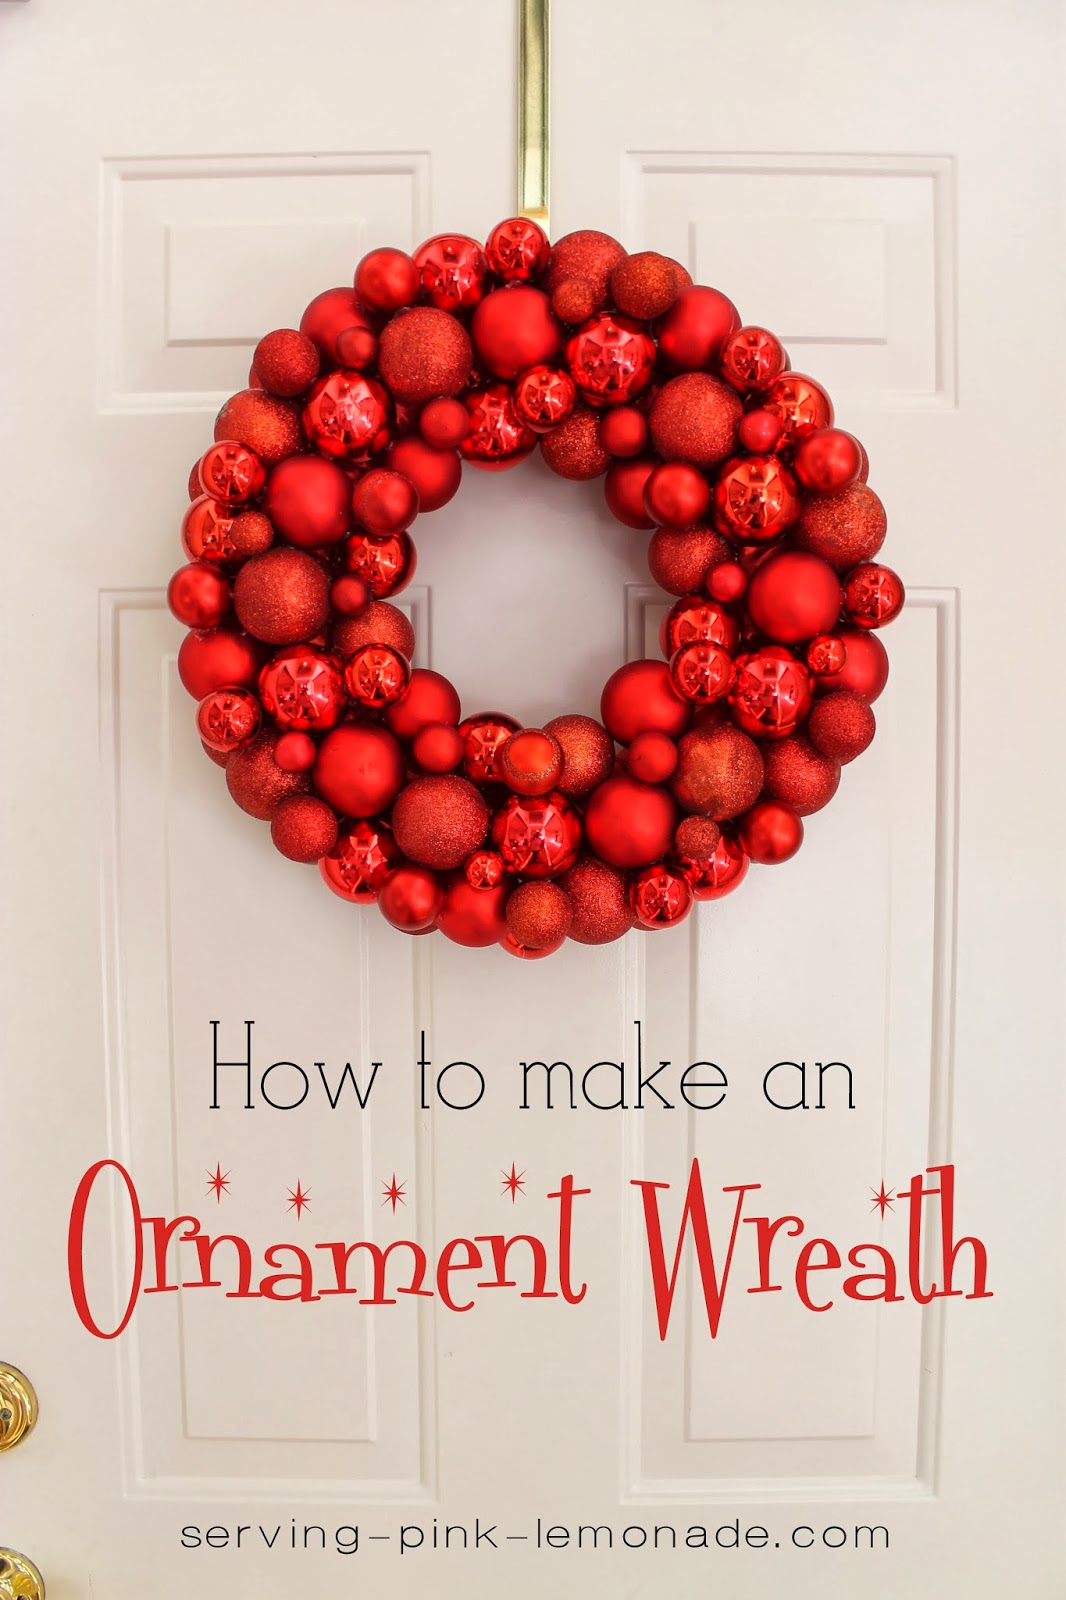 Serving pink lemonade christmas ornament wreath christmas ornament wreath solutioingenieria Image collections